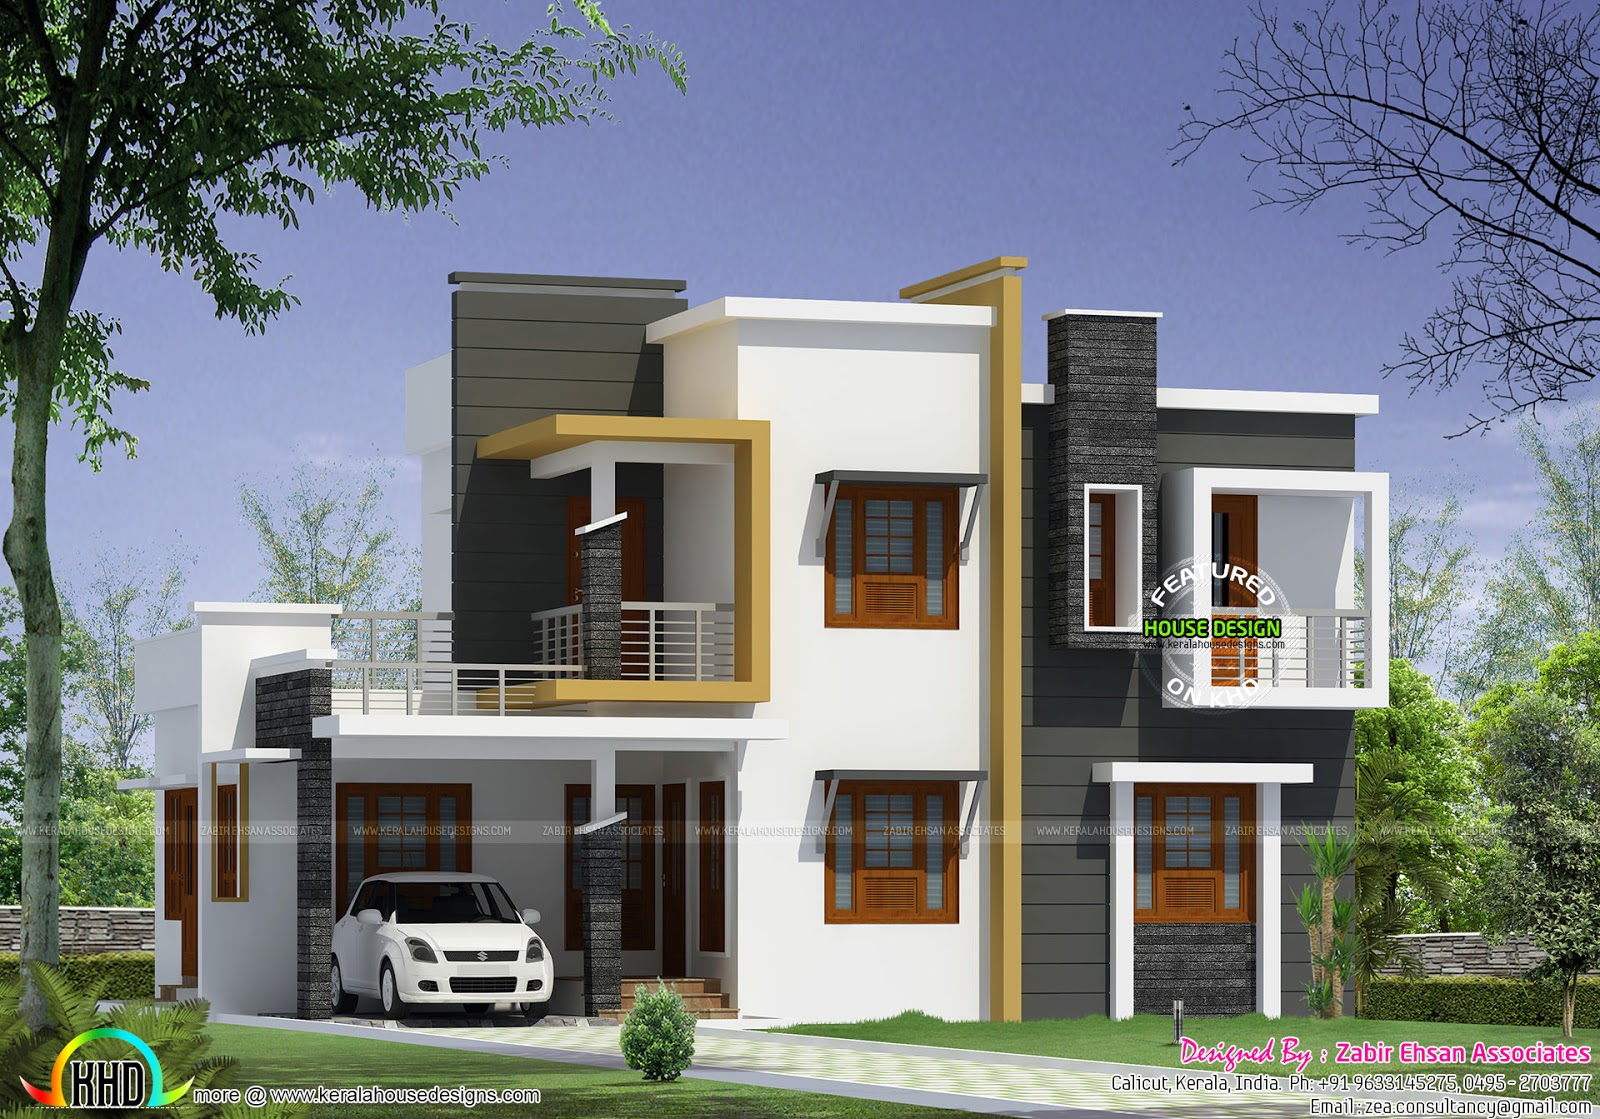 Box type modern house plan kerala home design and floor for Types of house plans